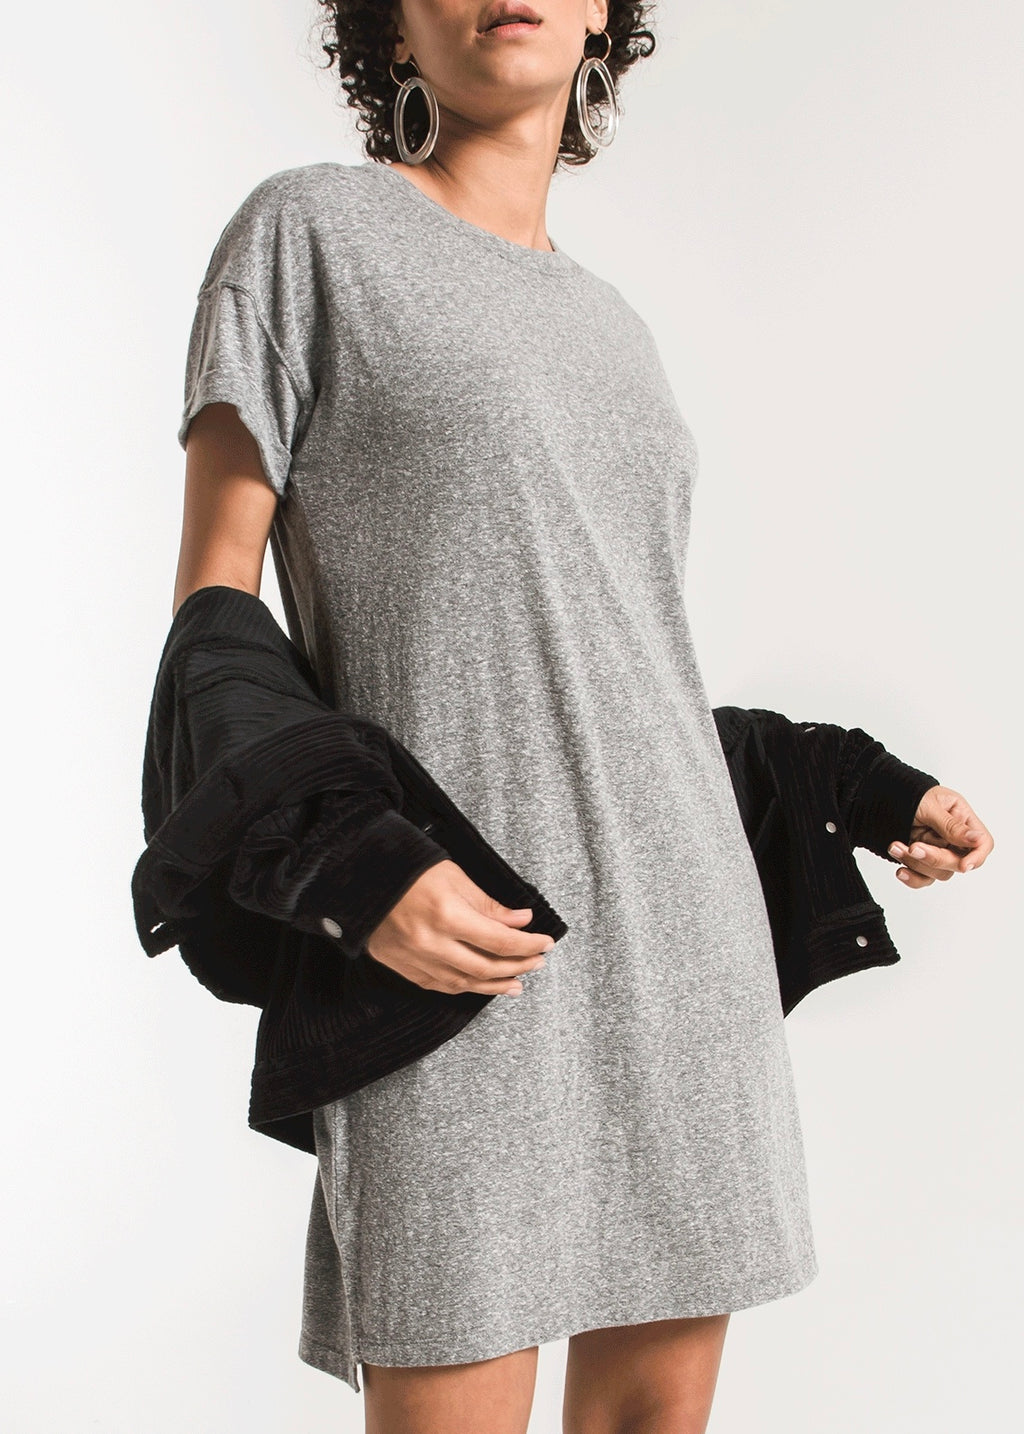 The Triblend T-Shirt Dress